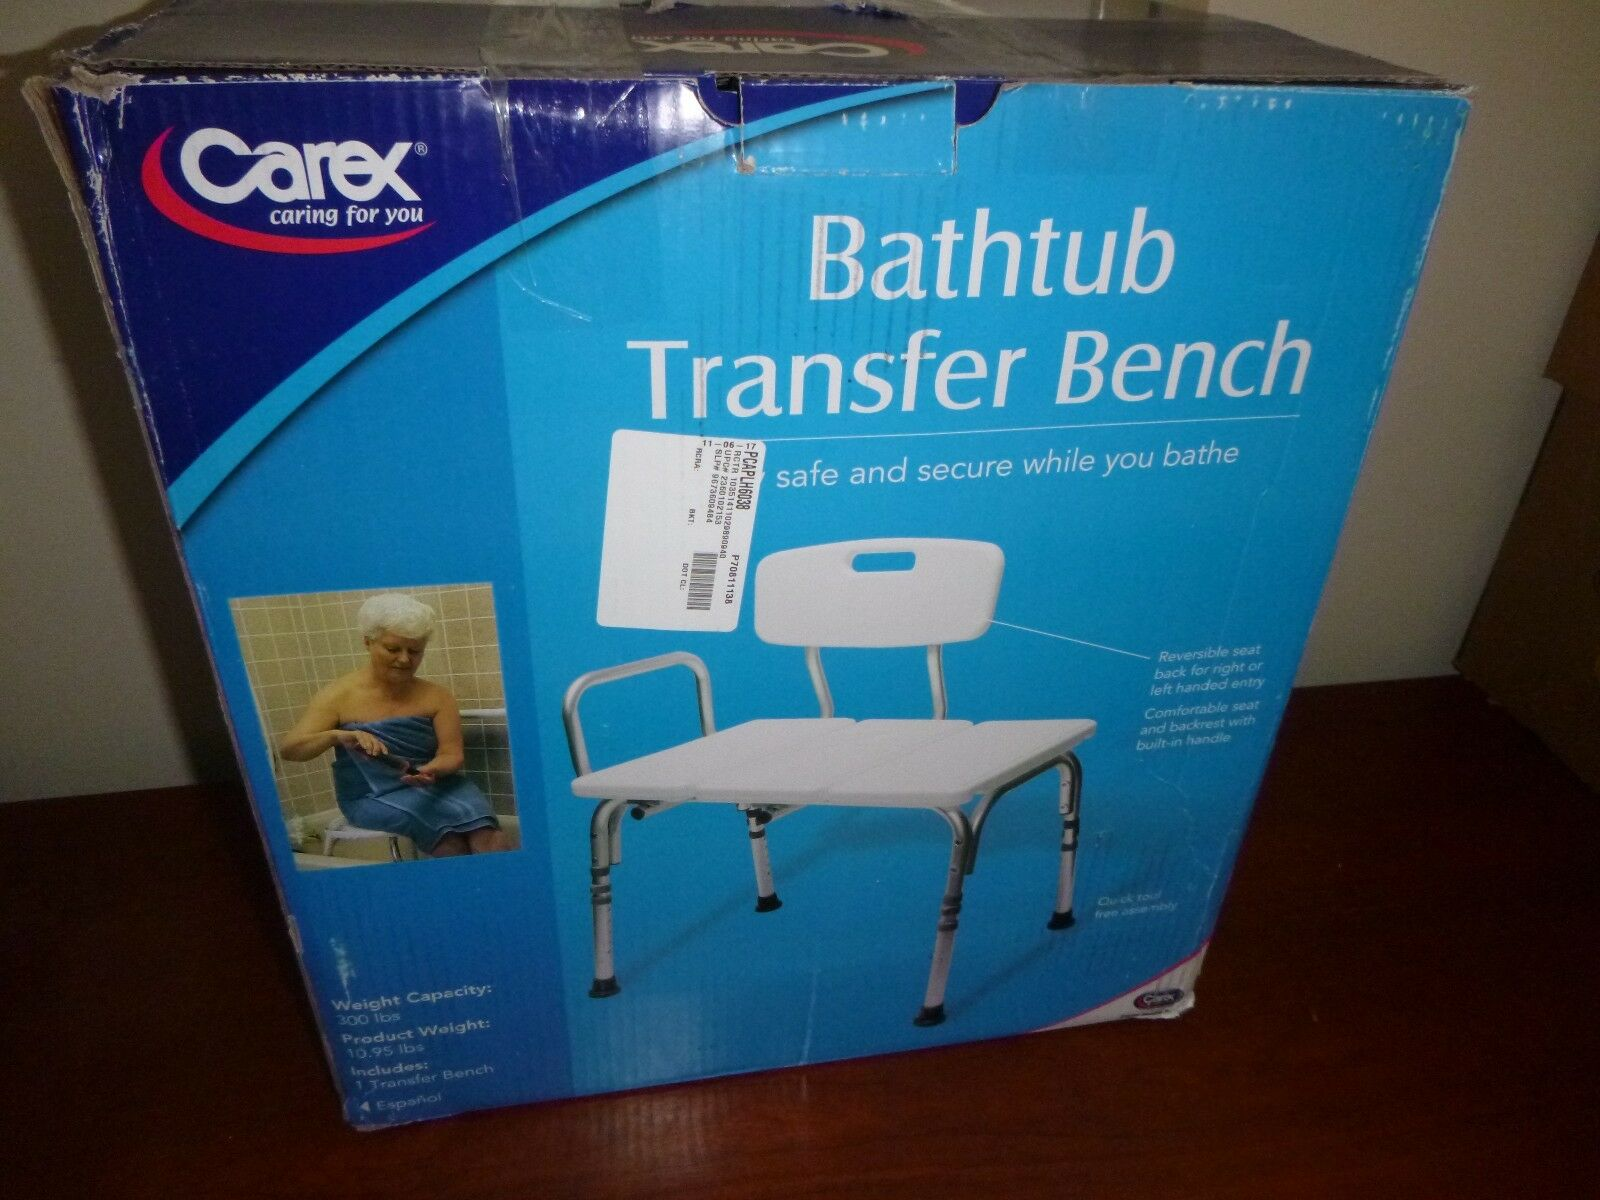 Carex Bathtub Transfer Bench Fgb15411-0000 Bath Tub Safety Bathroom ...